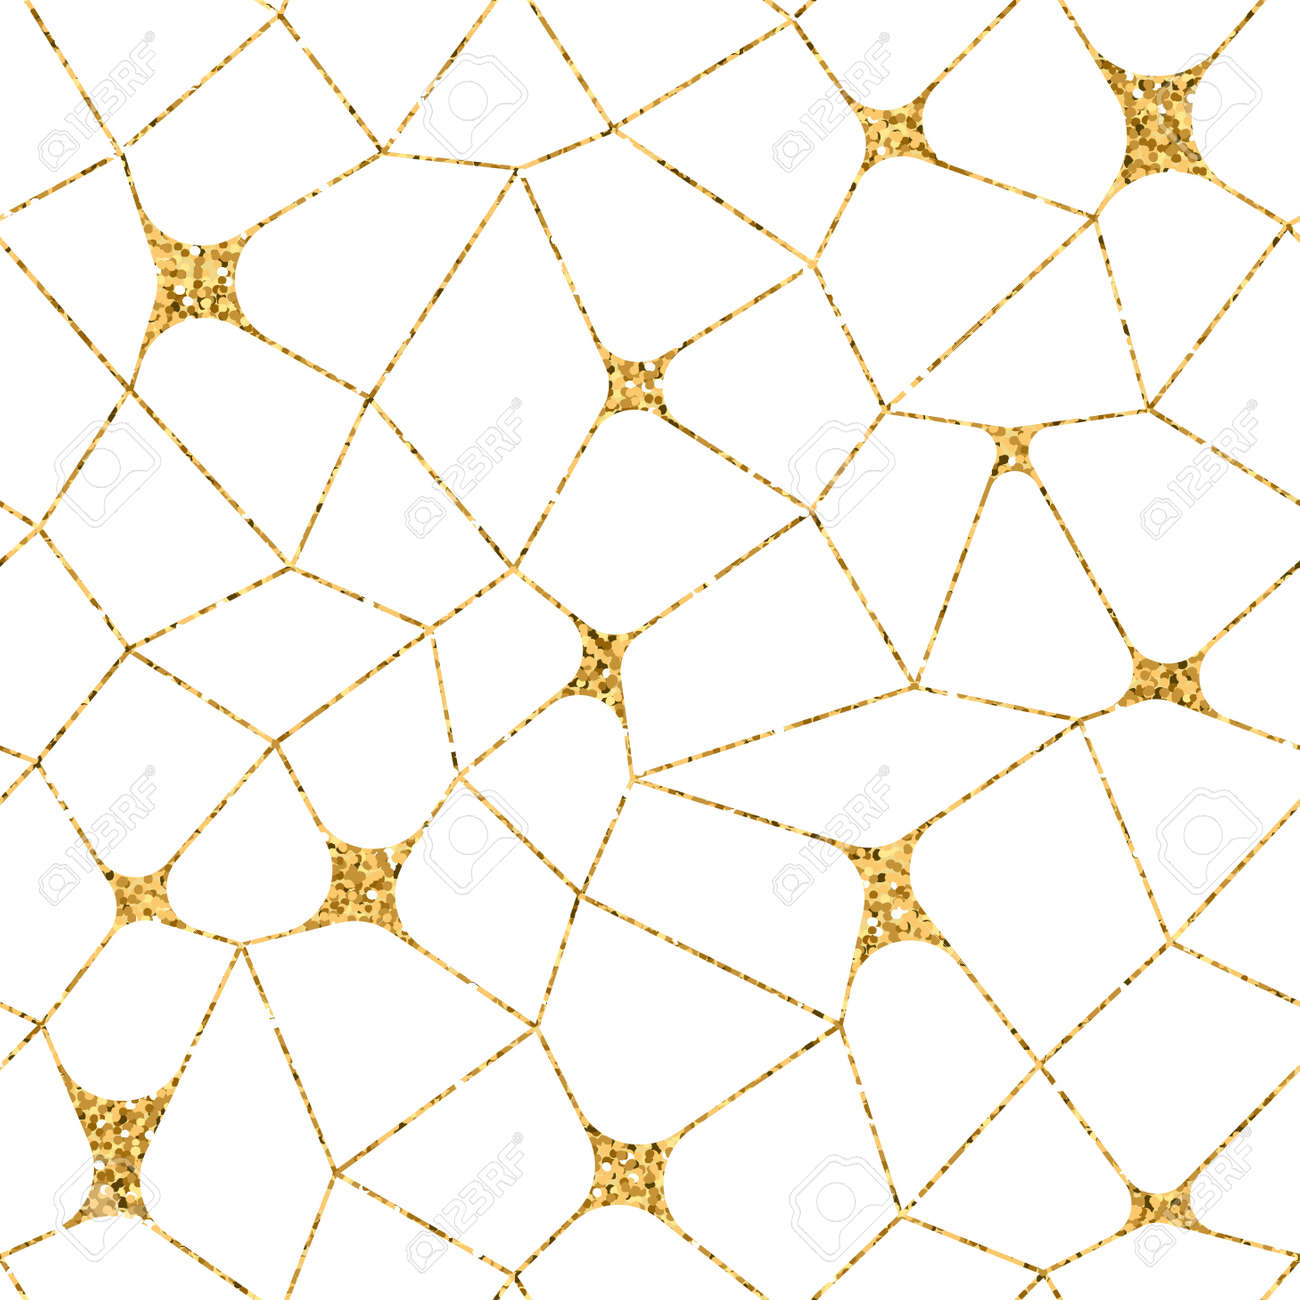 Mosaic Geometric Seamless Pattern 3d Gold Glitter White Template